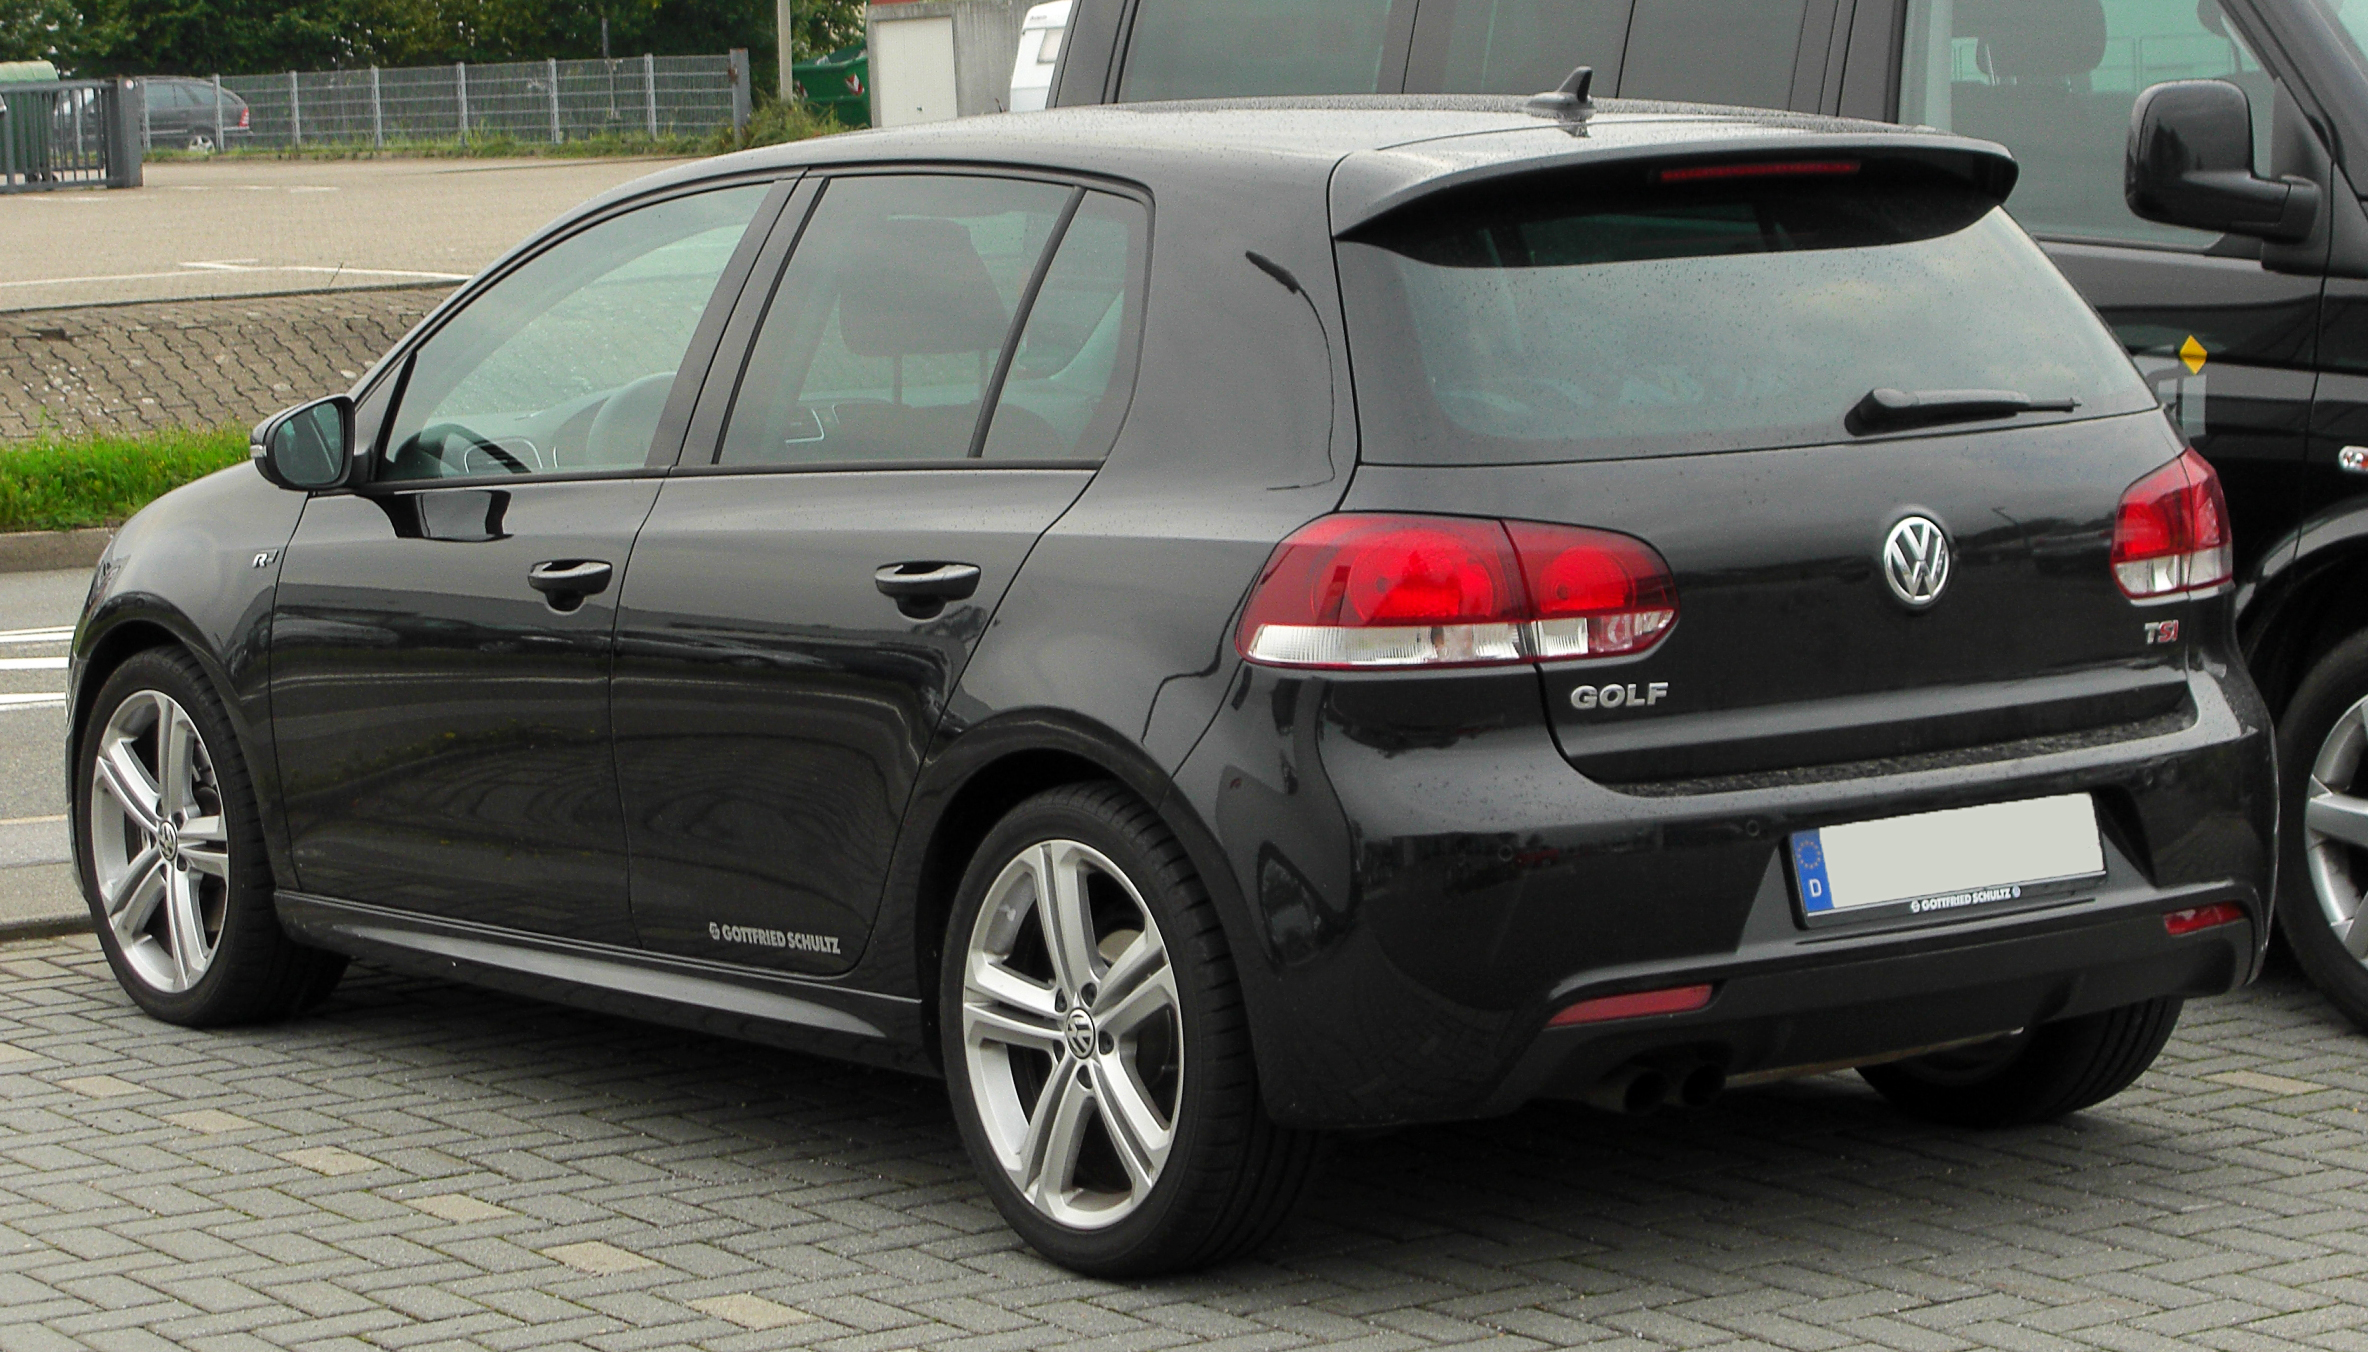 file vw golf vi 1 4 tsi r line rear wikimedia commons. Black Bedroom Furniture Sets. Home Design Ideas